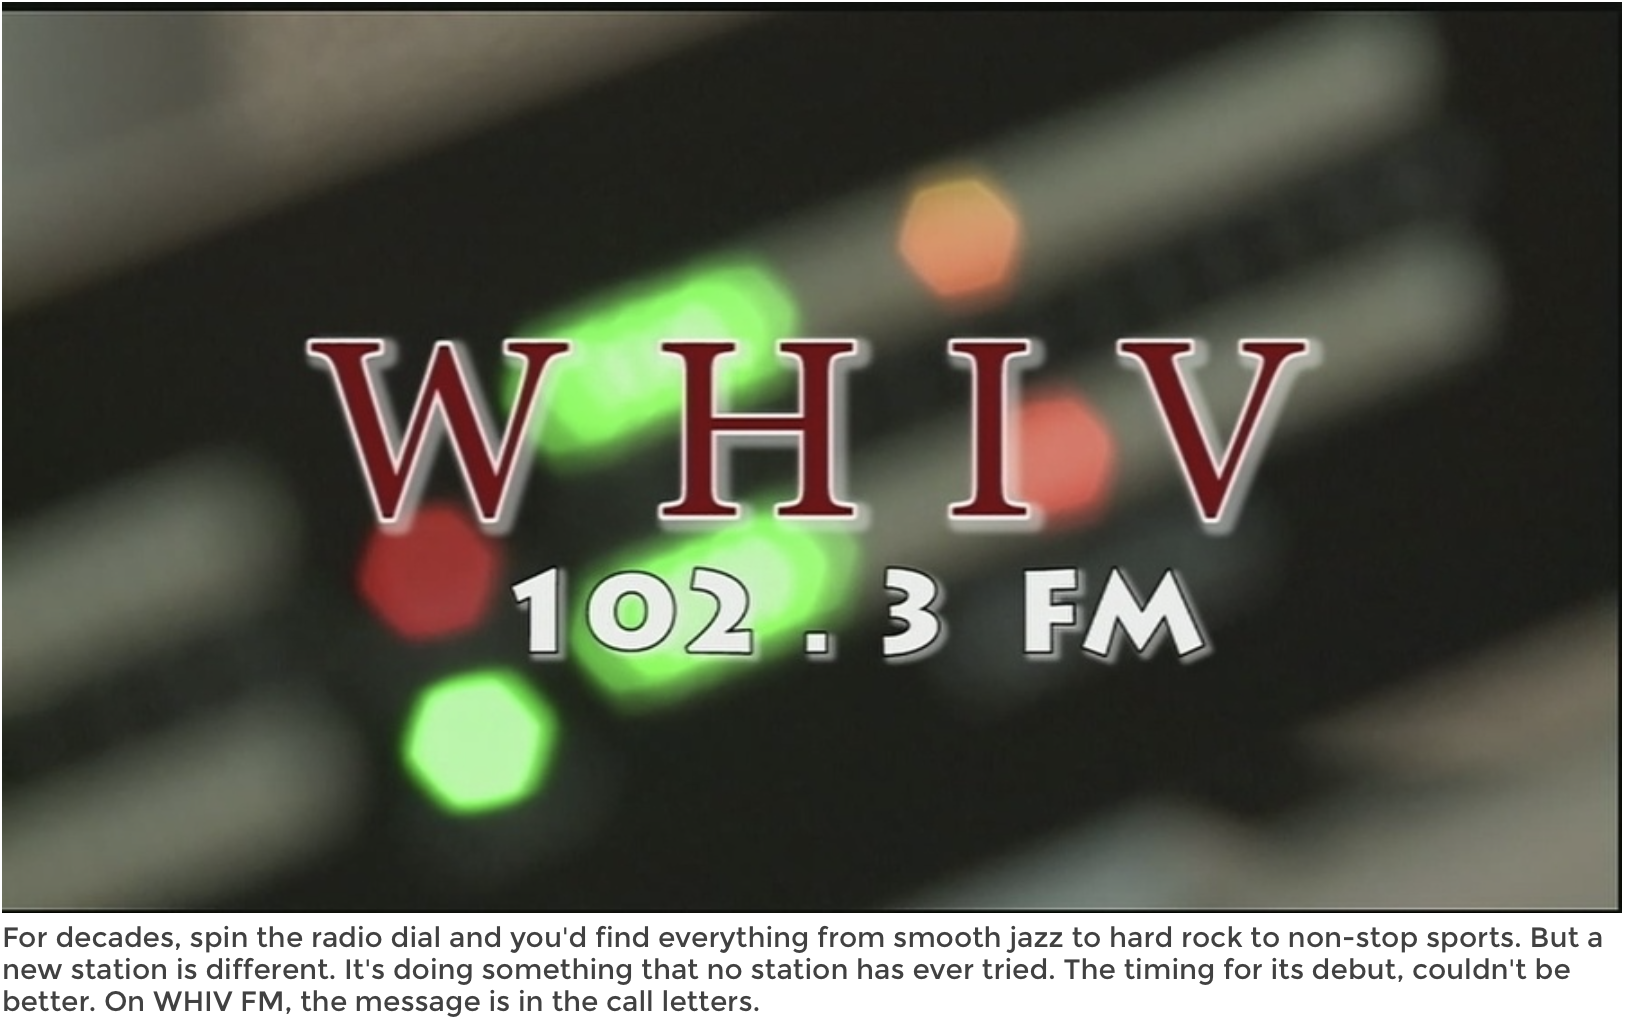 """Radio NOLA HIV: A community radio station - The new radio station on the air has a format unlike any other. It's called """"Radio NOLA HIV,"""" known by its call letters, WHIV.That's not all the station will offer. It's 24/7 coverage is dedicated to bringing human rights and social justice to the forefront -- and giving people a voice.""""It's community radio. And community radio is the voice of democracy, and that's what we're trying to do with WHIV,"""" Dery says.Full Article HERE"""